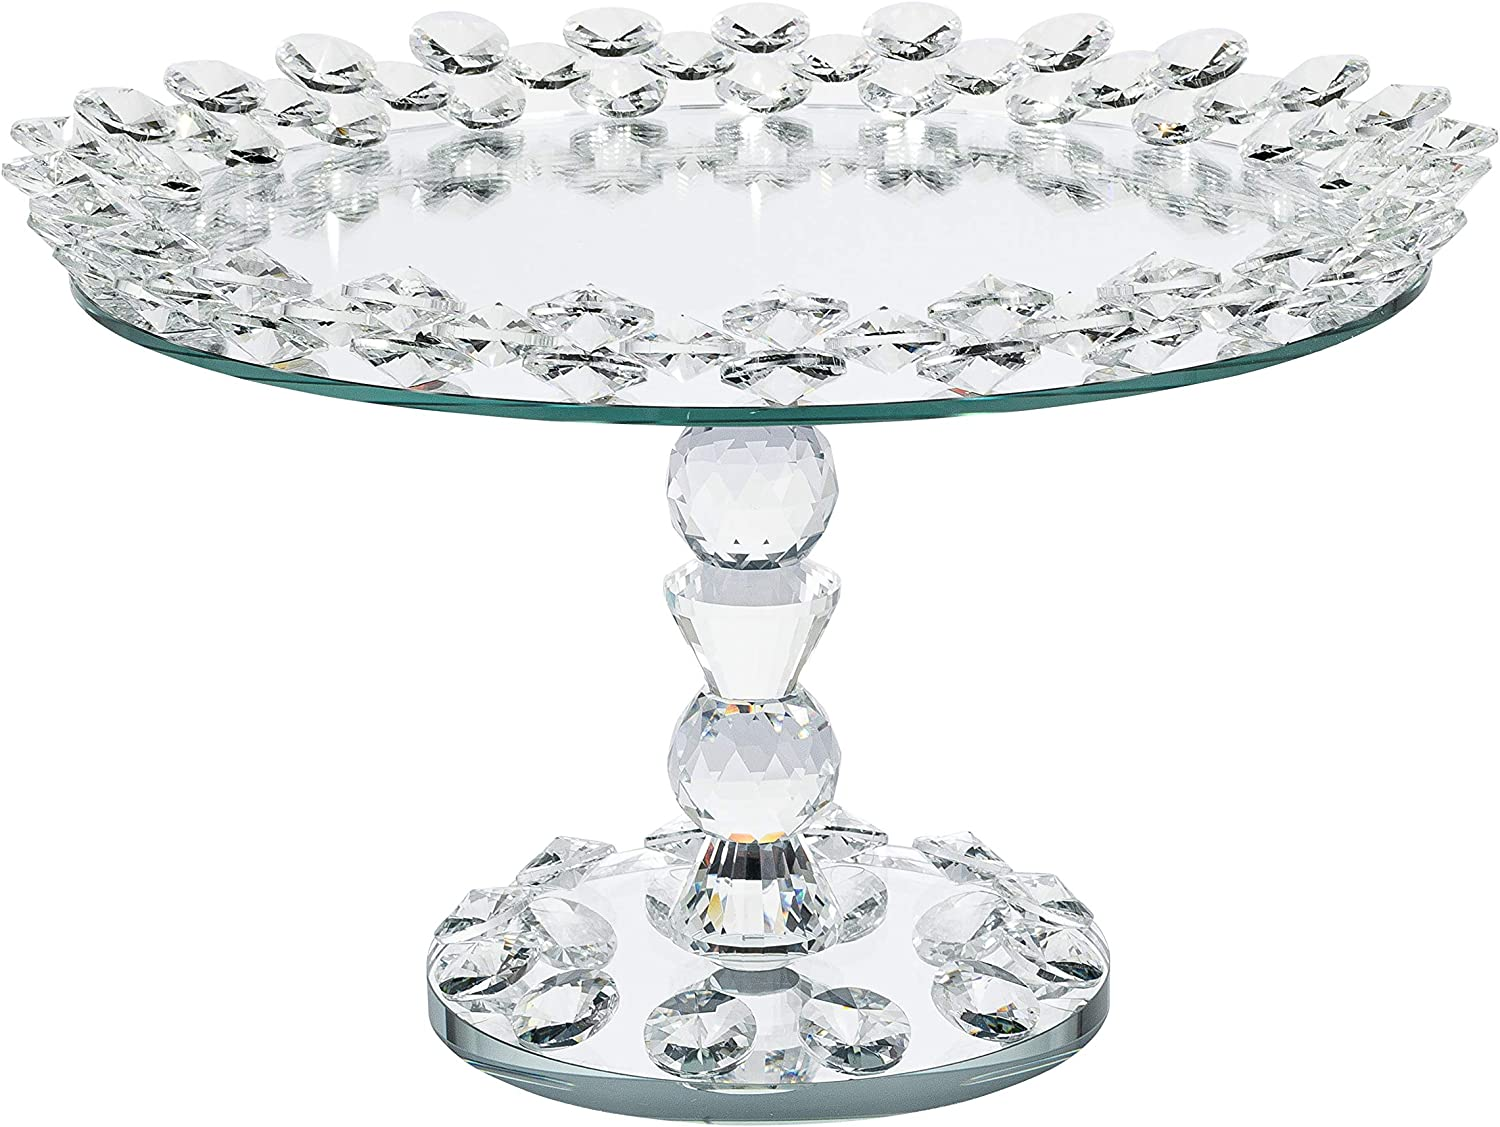 Simply Elegant Crystal Glass Quantity limited Cake 12.5